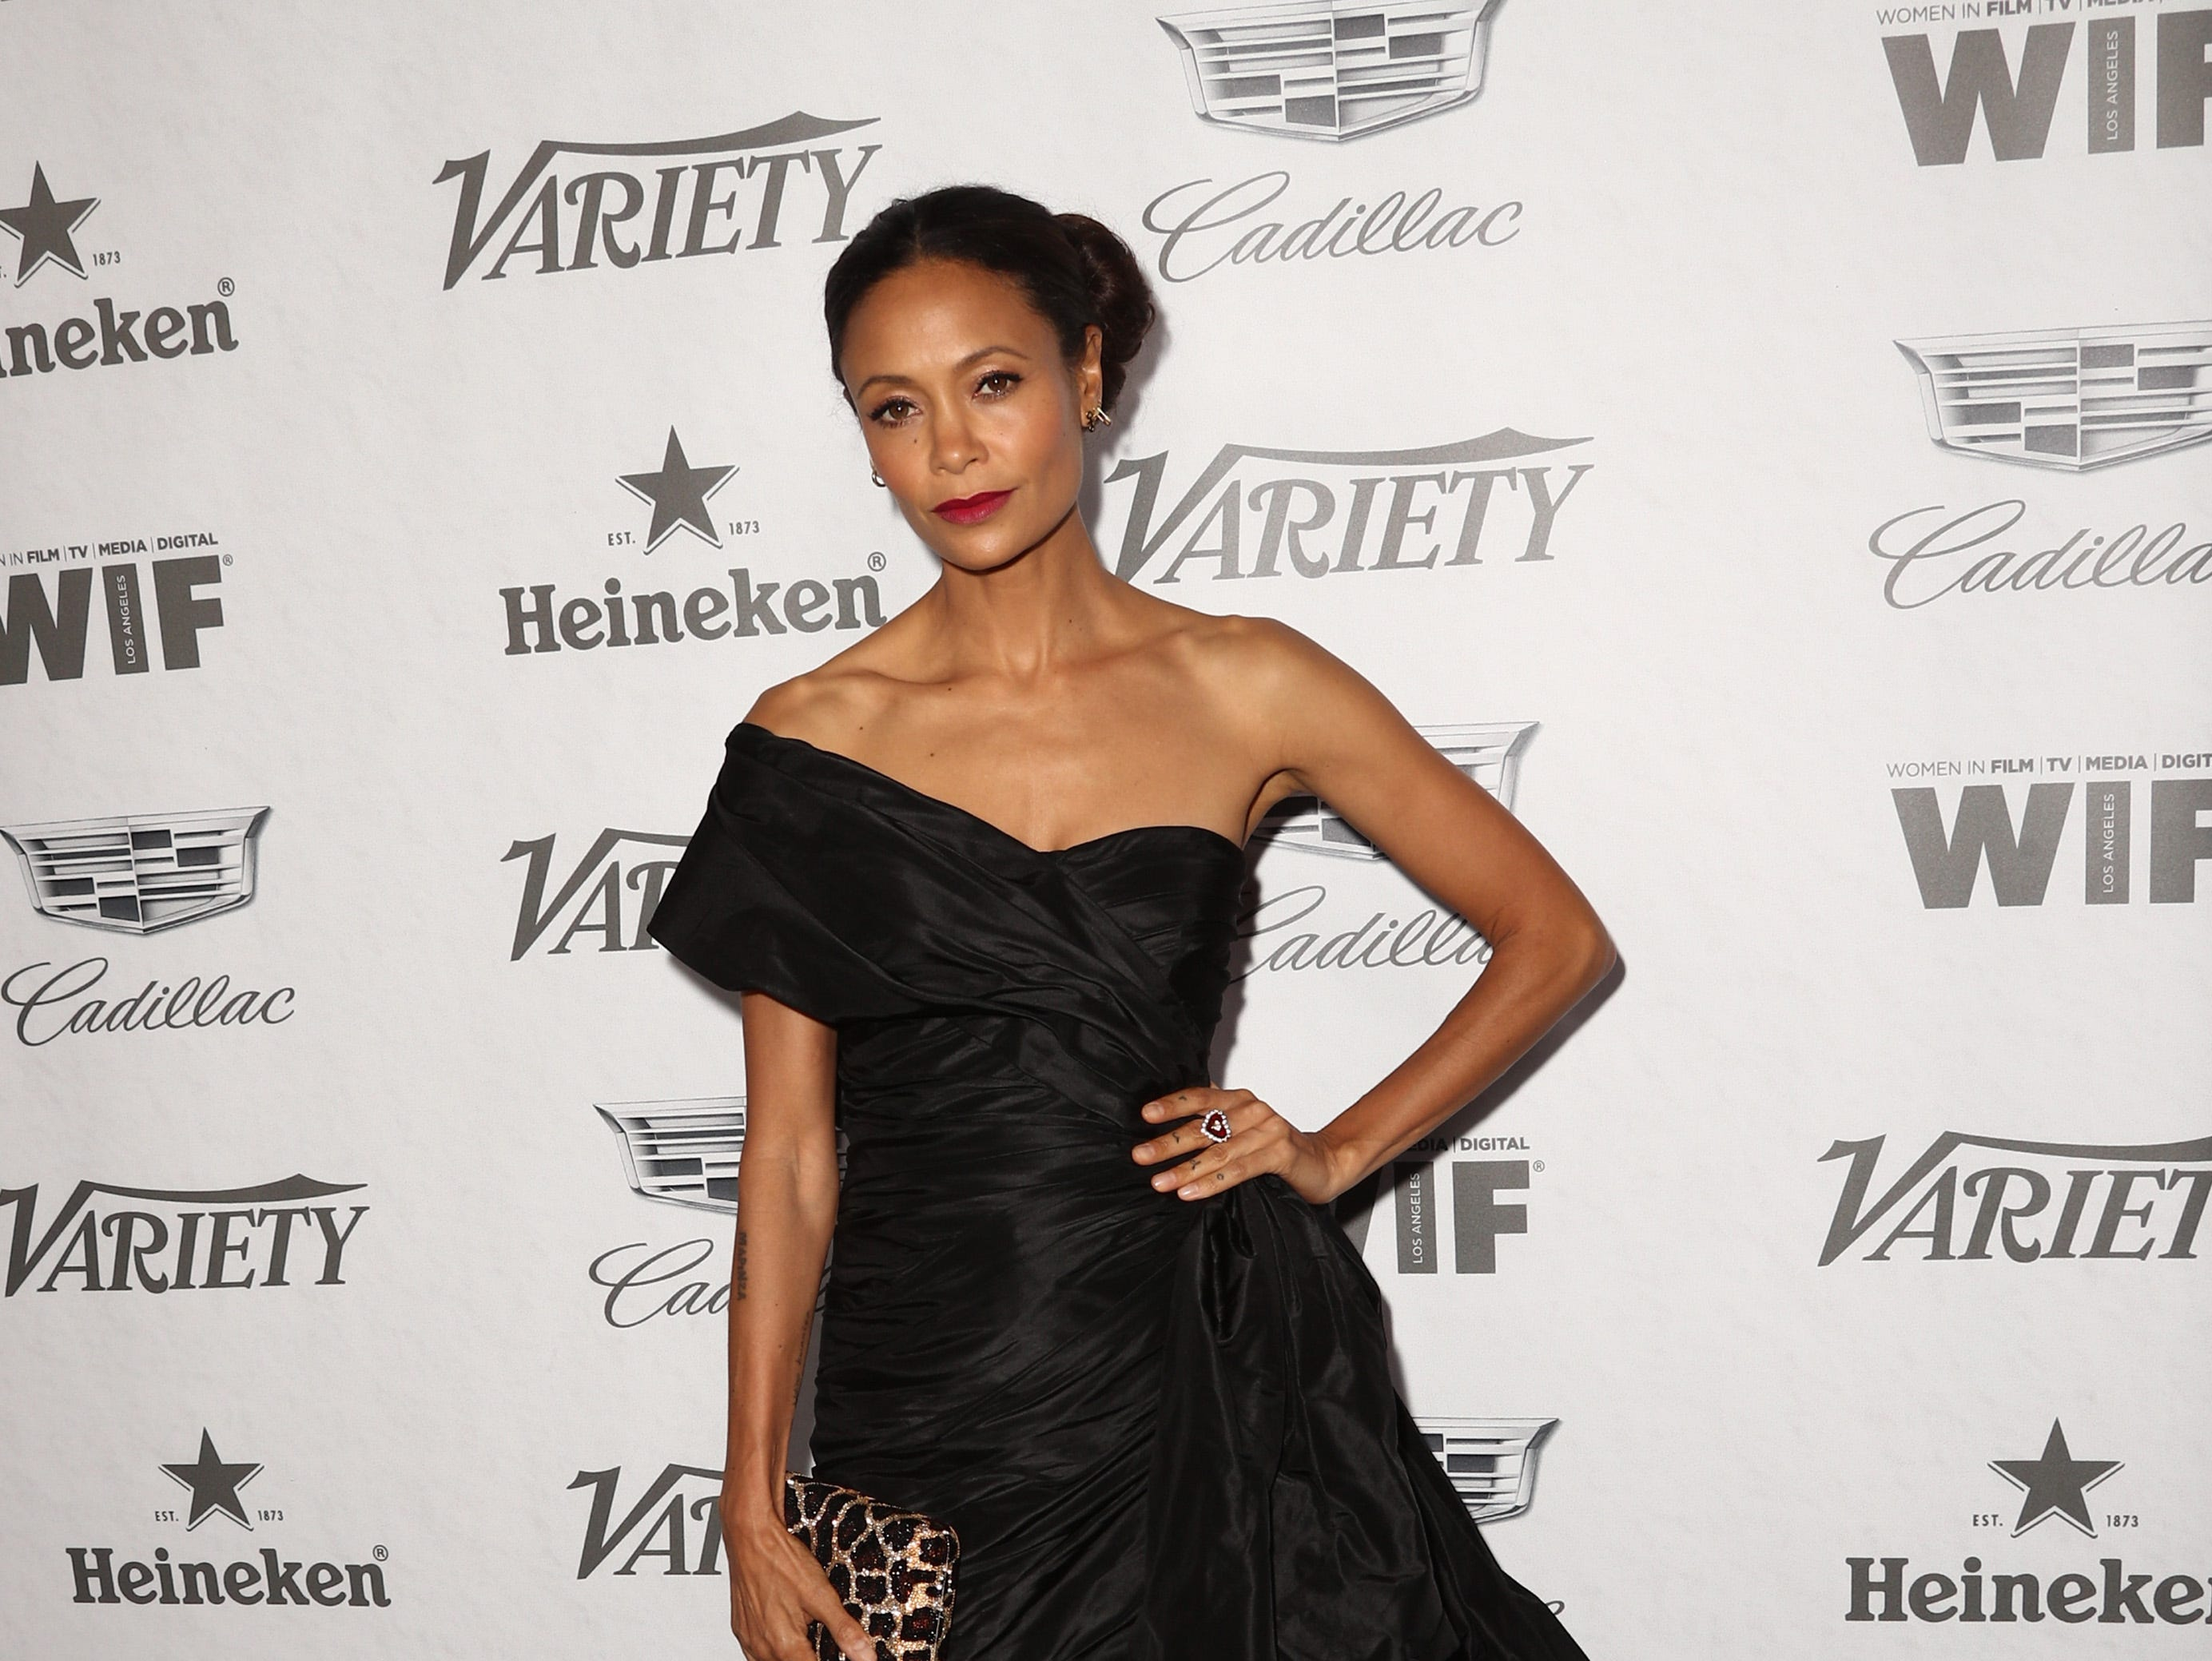 WEST HOLLYWOOD, CA - SEPTEMBER 15:  Thandie Newton attends Variety and Women in Film's 2018 Pre-Emmy Celebration at Cecconi's on September 15, 2018 in West Hollywood, California.  (Photo by Frederick M. Brown/Getty Images) ORG XMIT: 775218358 ORIG FILE ID: 1033997416